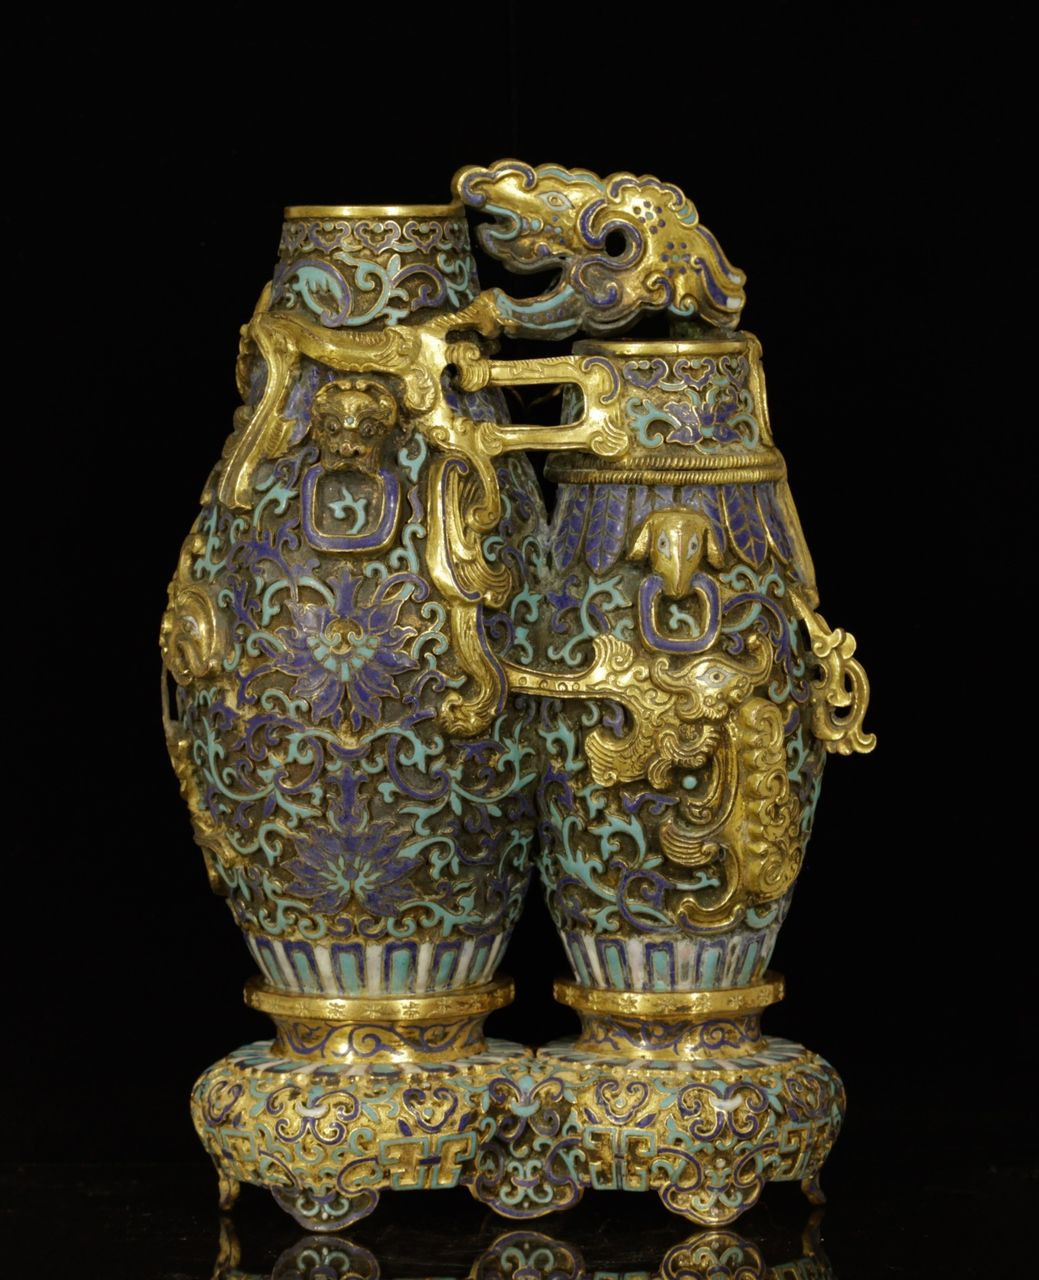 chinese cloisonne vase marks of lot 239 s54 chinese enameled double vase w mark est 10000 pertaining to lot 239 s54 chinese enameled double vase w mark est 10000 15000